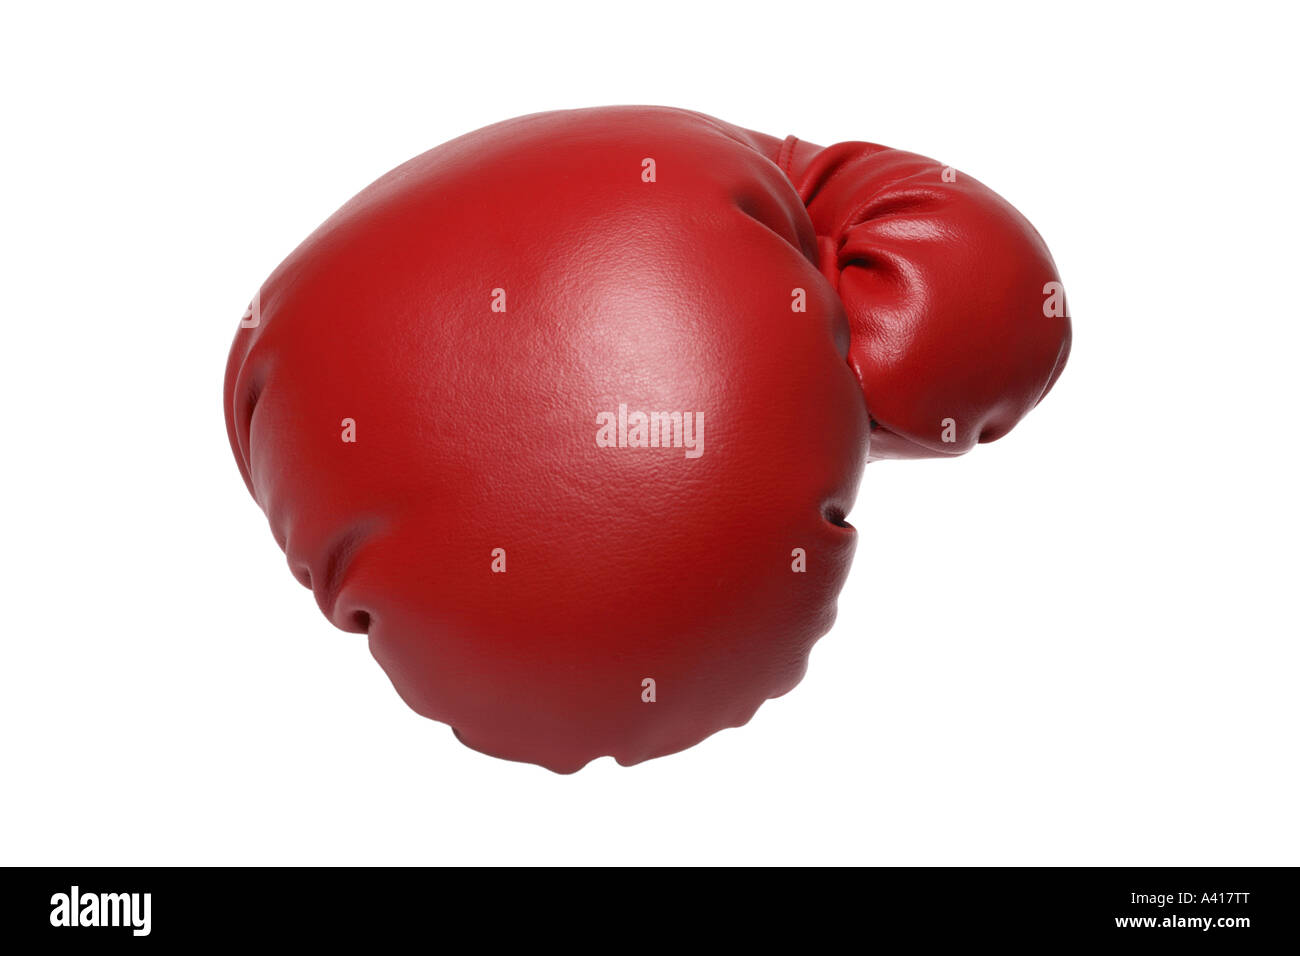 Boxing Glove cut out on white background - Stock Image